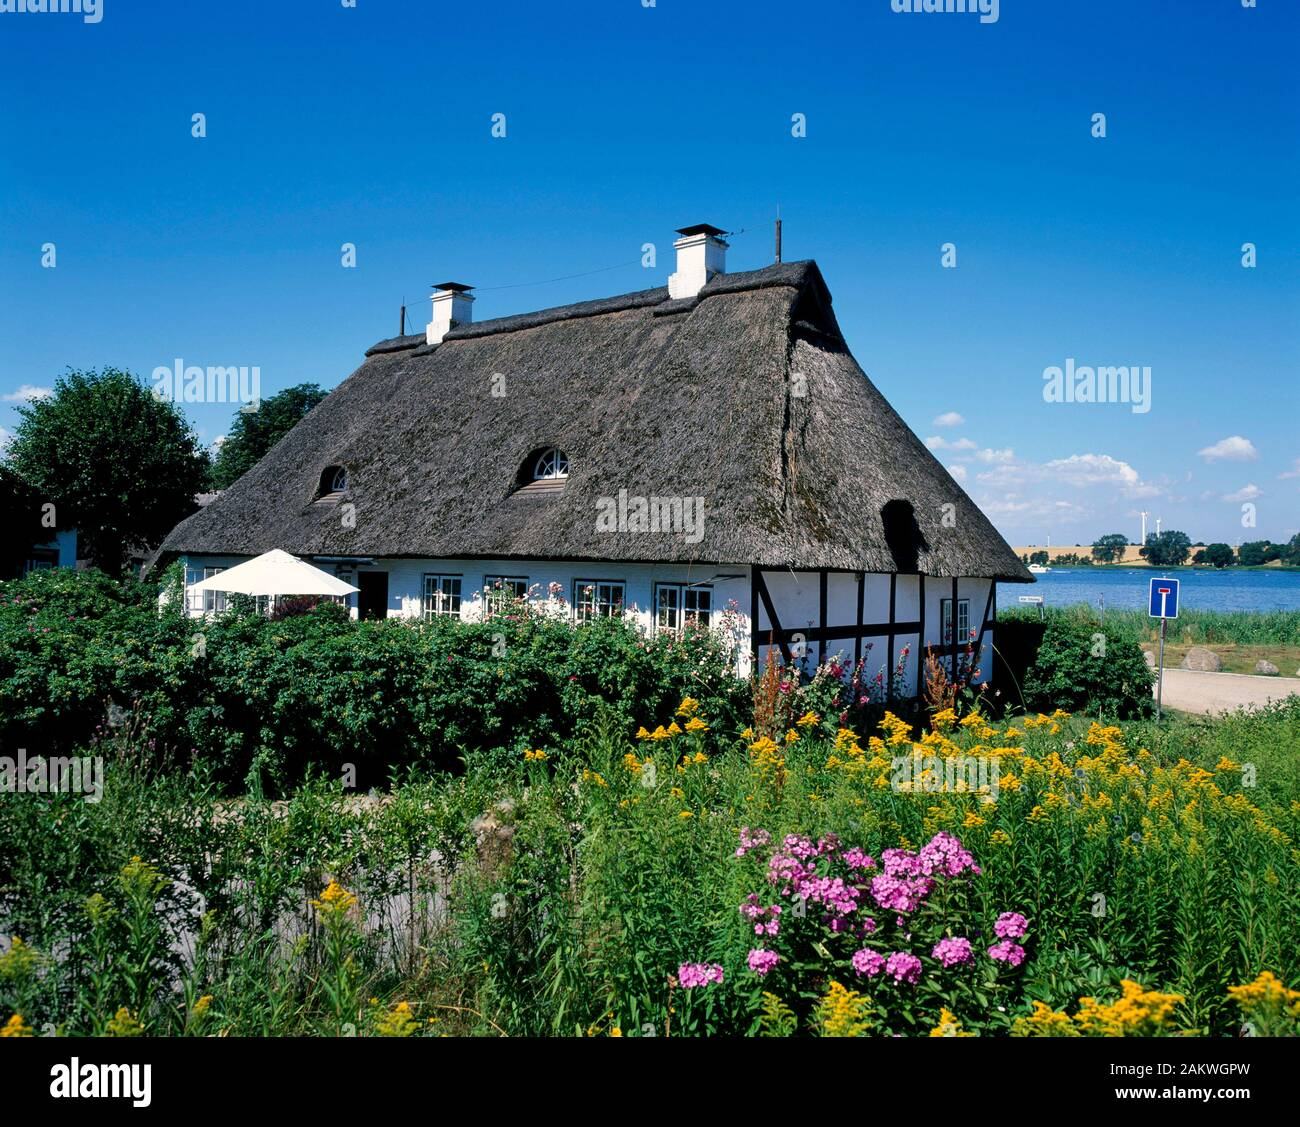 Sieseby, typical  house, Schlei, Balic Sea Coast, Schleswig-Holstein, Germany Stock Photo